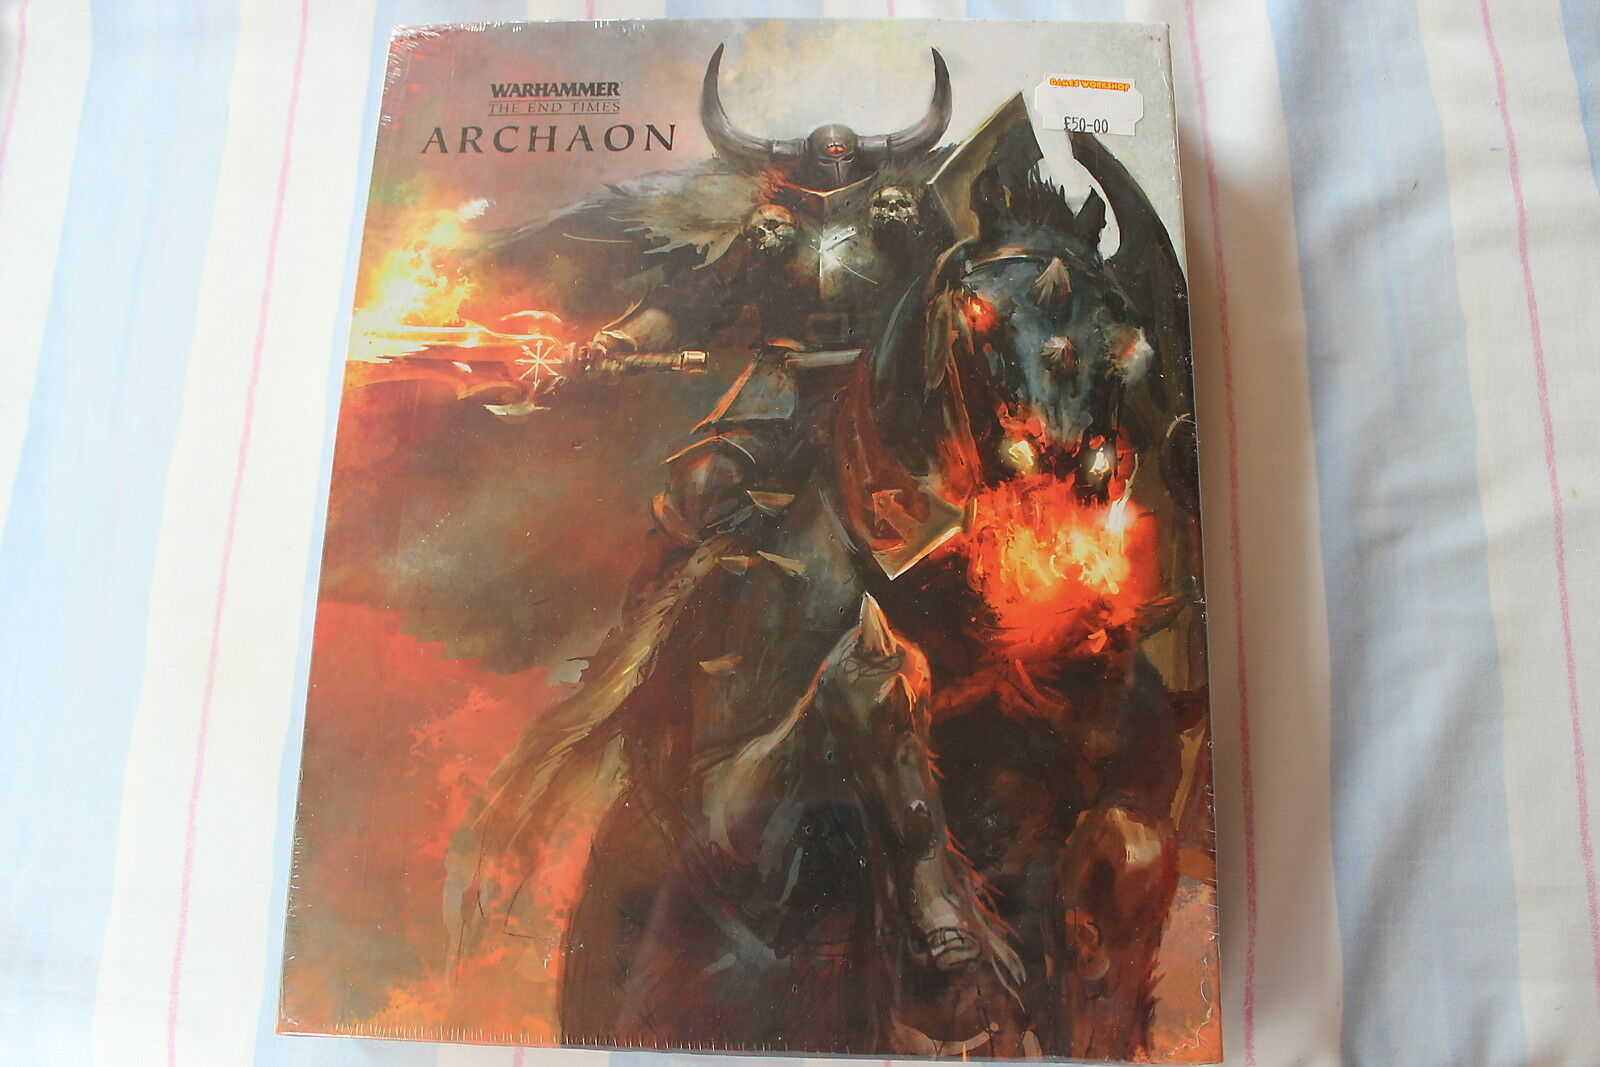 Games workshop warhammer archaon cartonnée books 1 & 2 the end times new sealed